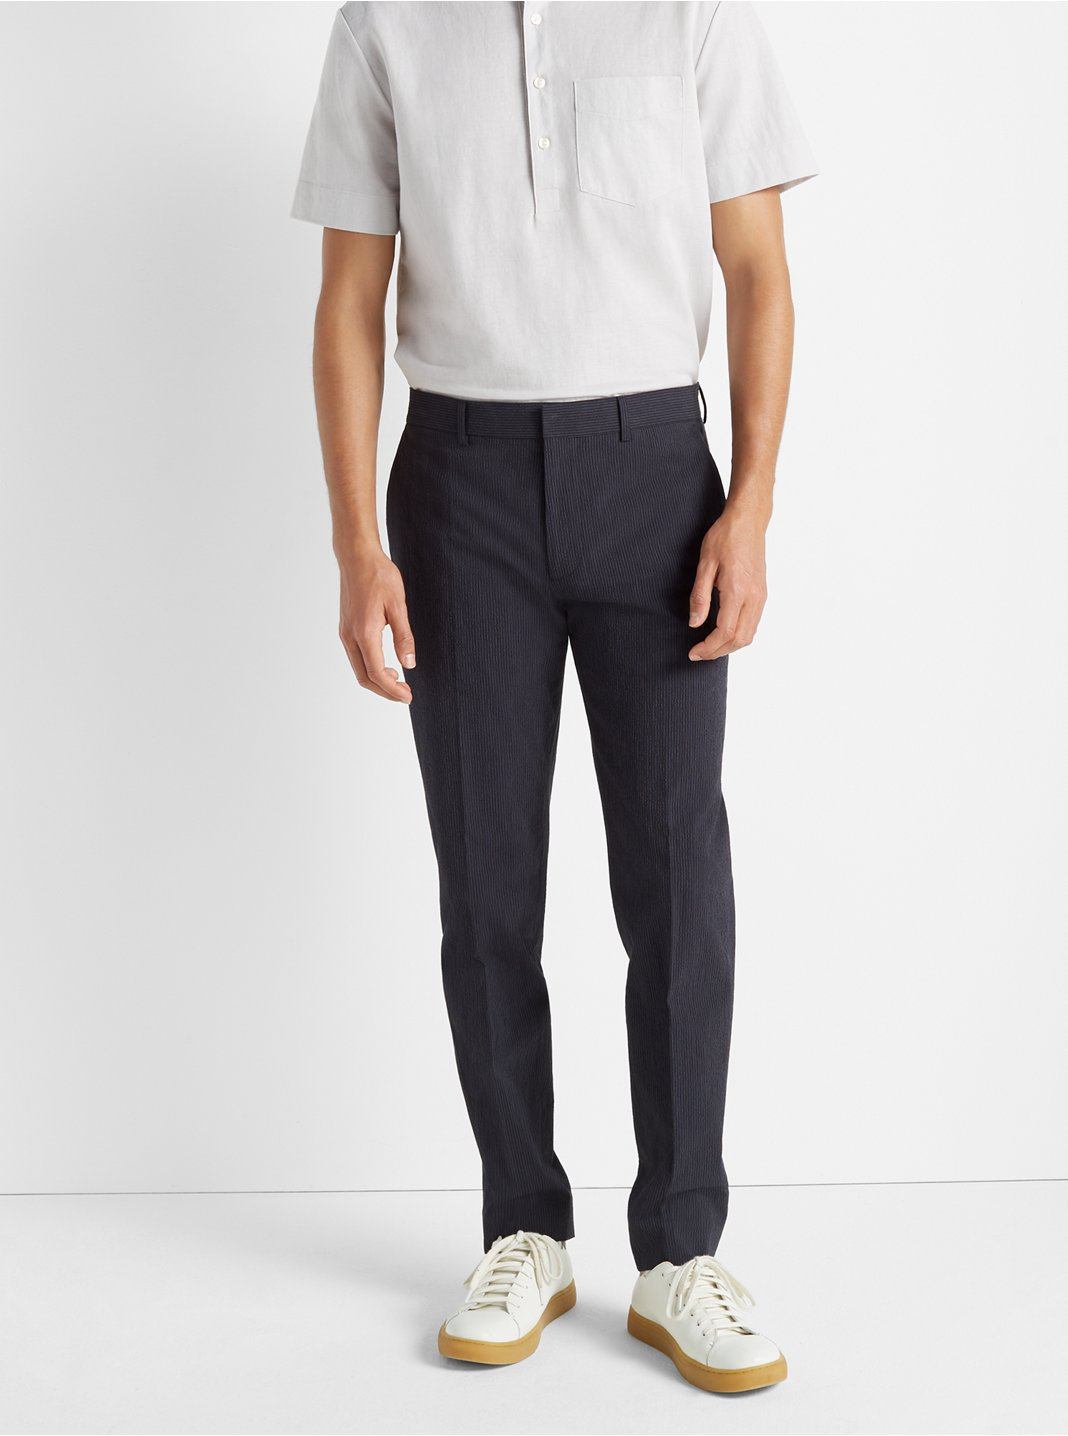 Sutton Seersucker Trouser